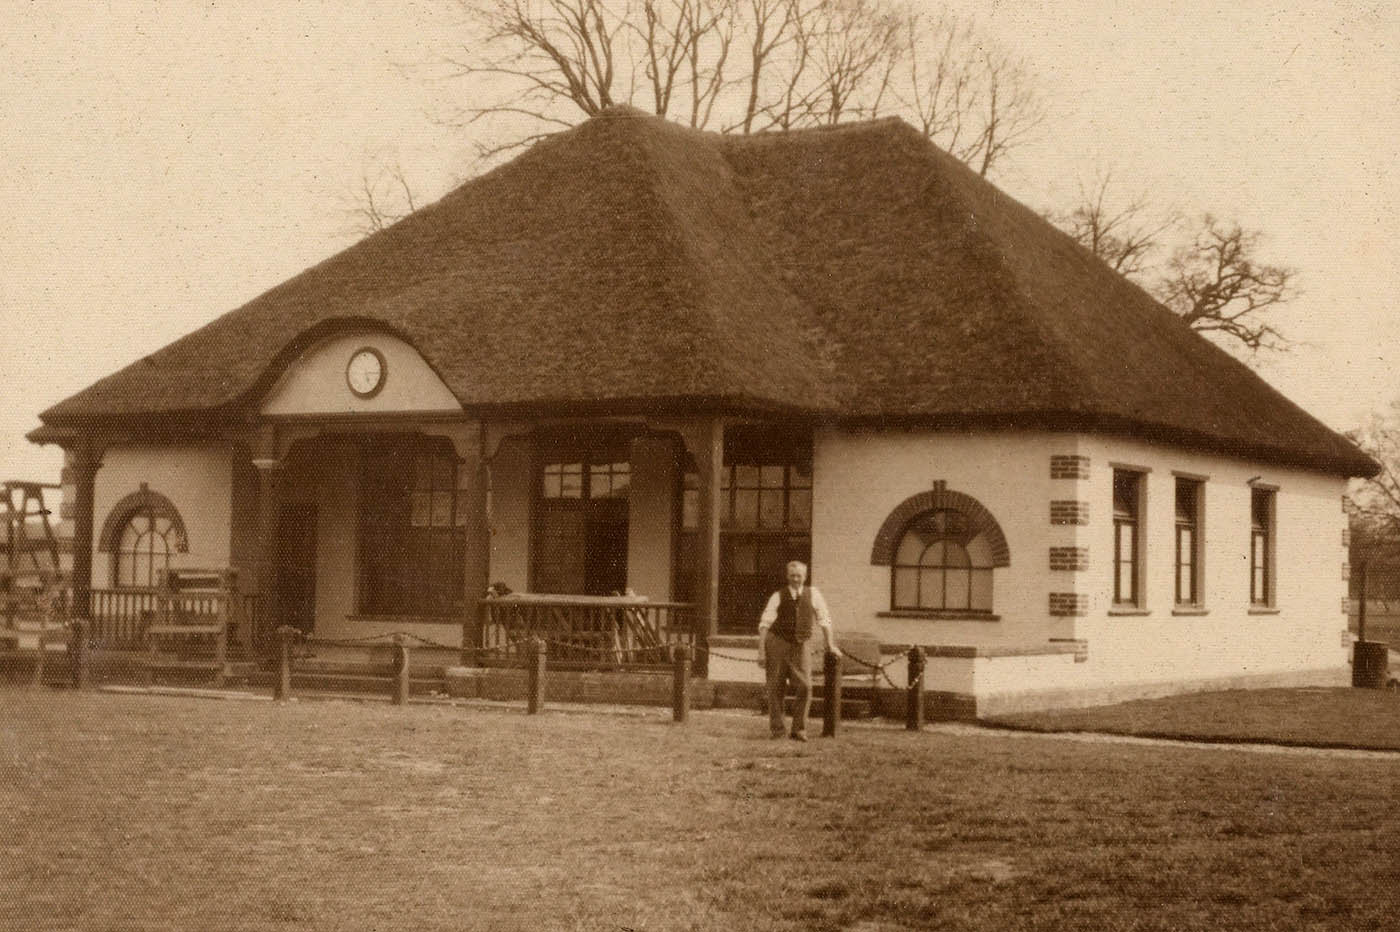 The Old Pavilion built in 1932 and destroyed by fire in June 1942